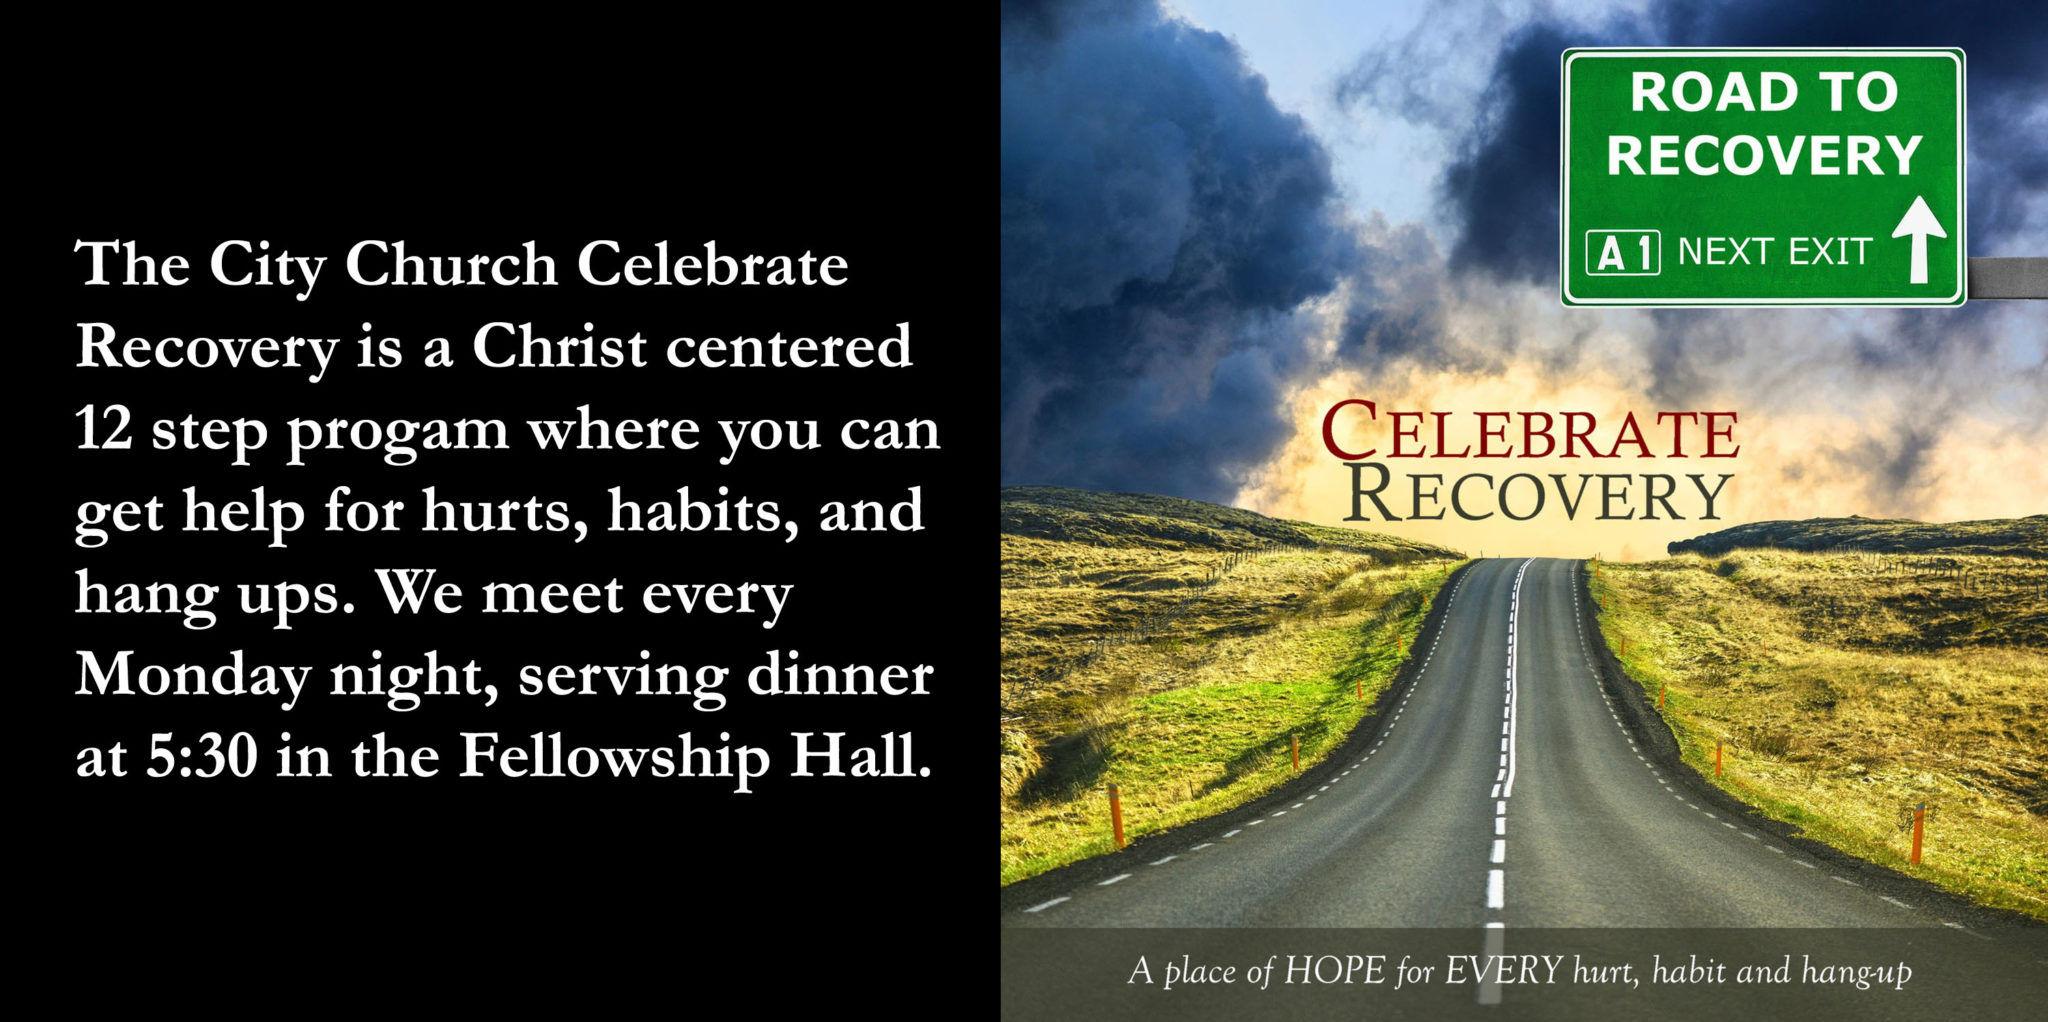 Celebrate Recovery at The City Church